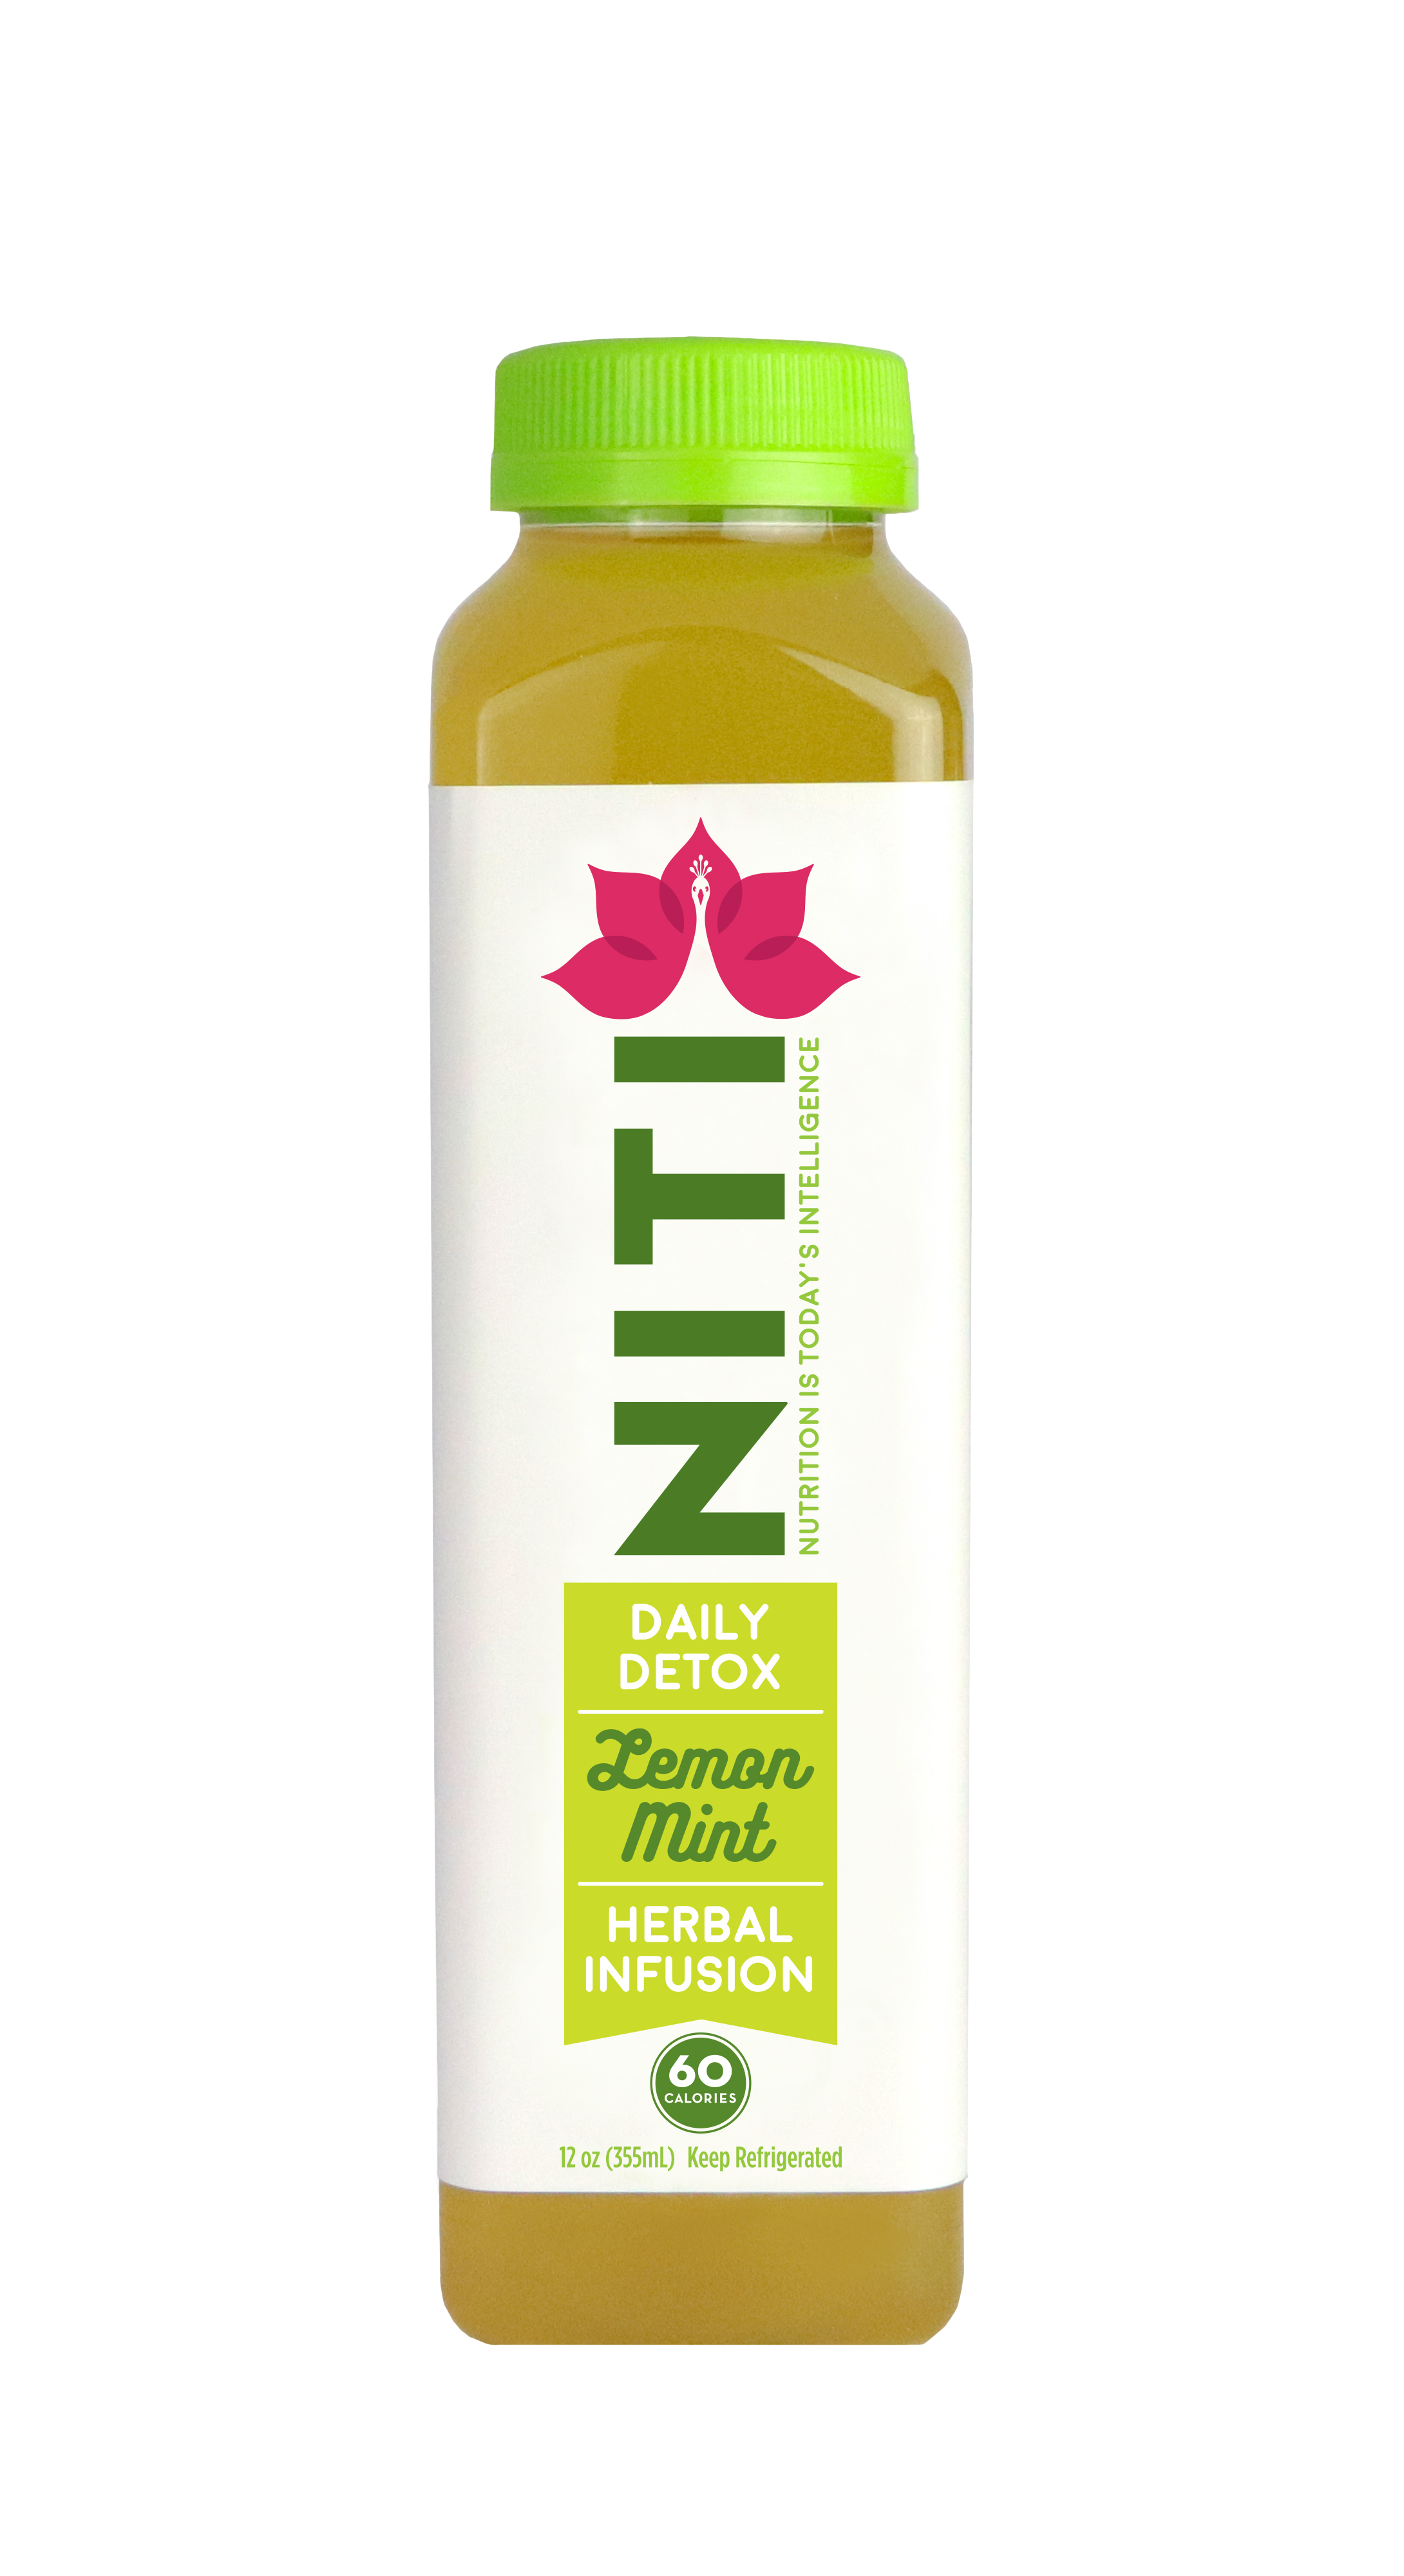 Niti's Lemon Mint Daily Detox - An herbal infusion of natural liver detoxifying ingredients designed to restore the liver and purify the body.